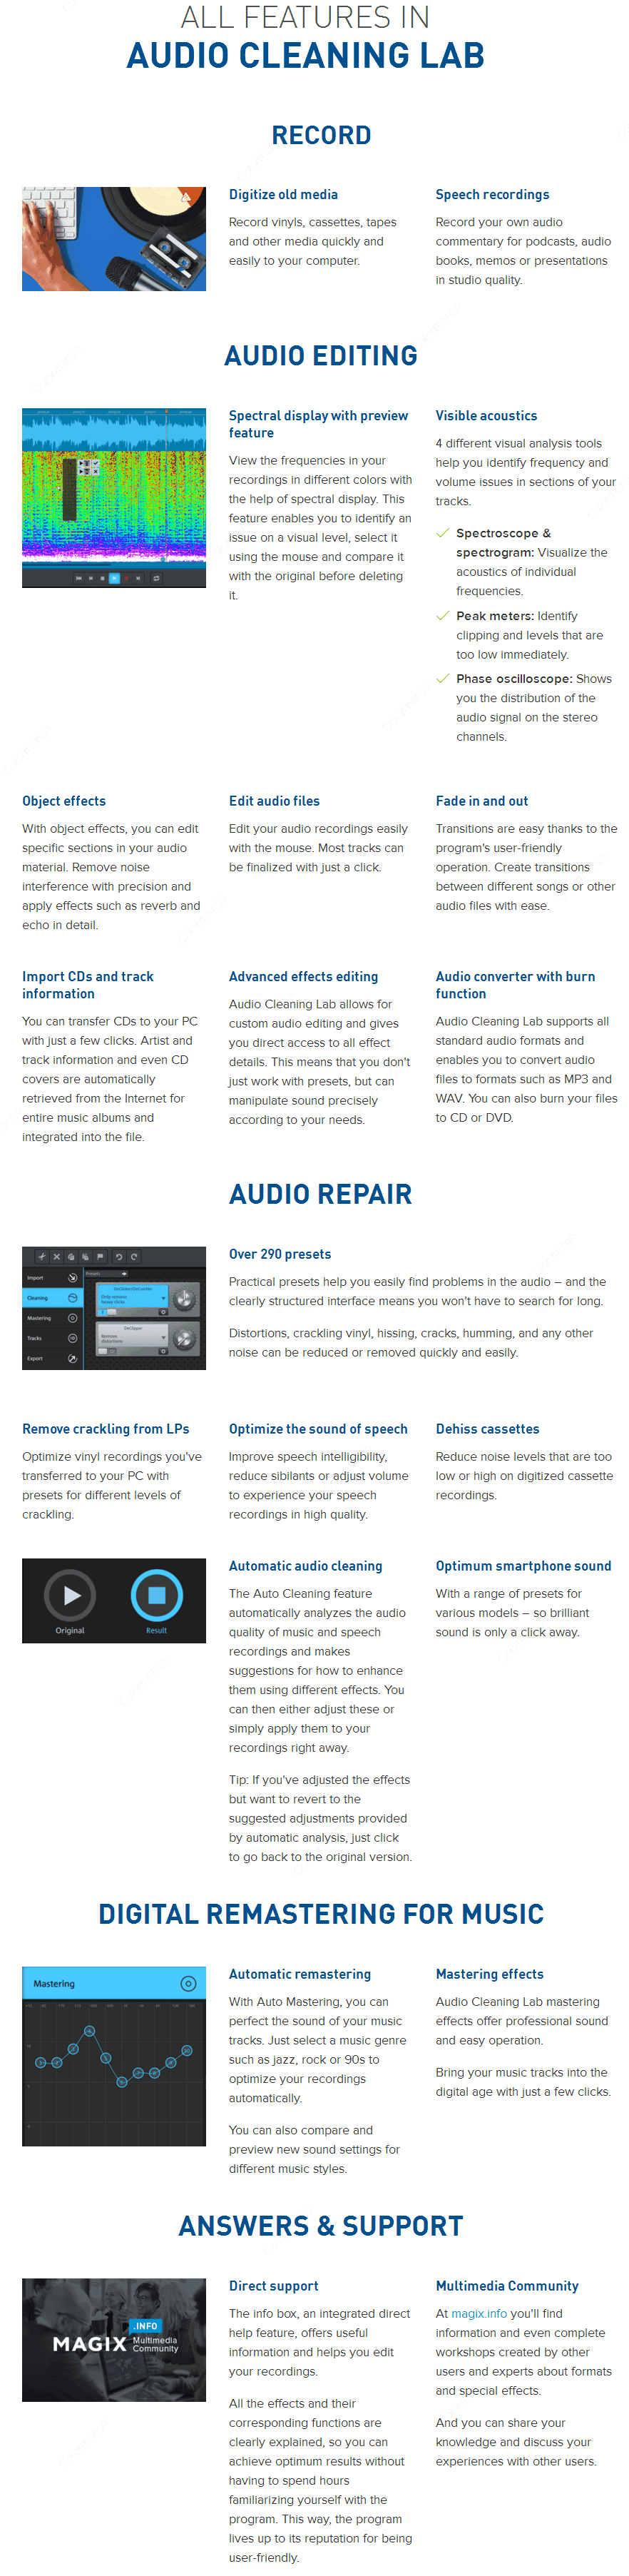 SOUND FORGE Audio Cleaning Lab key Features